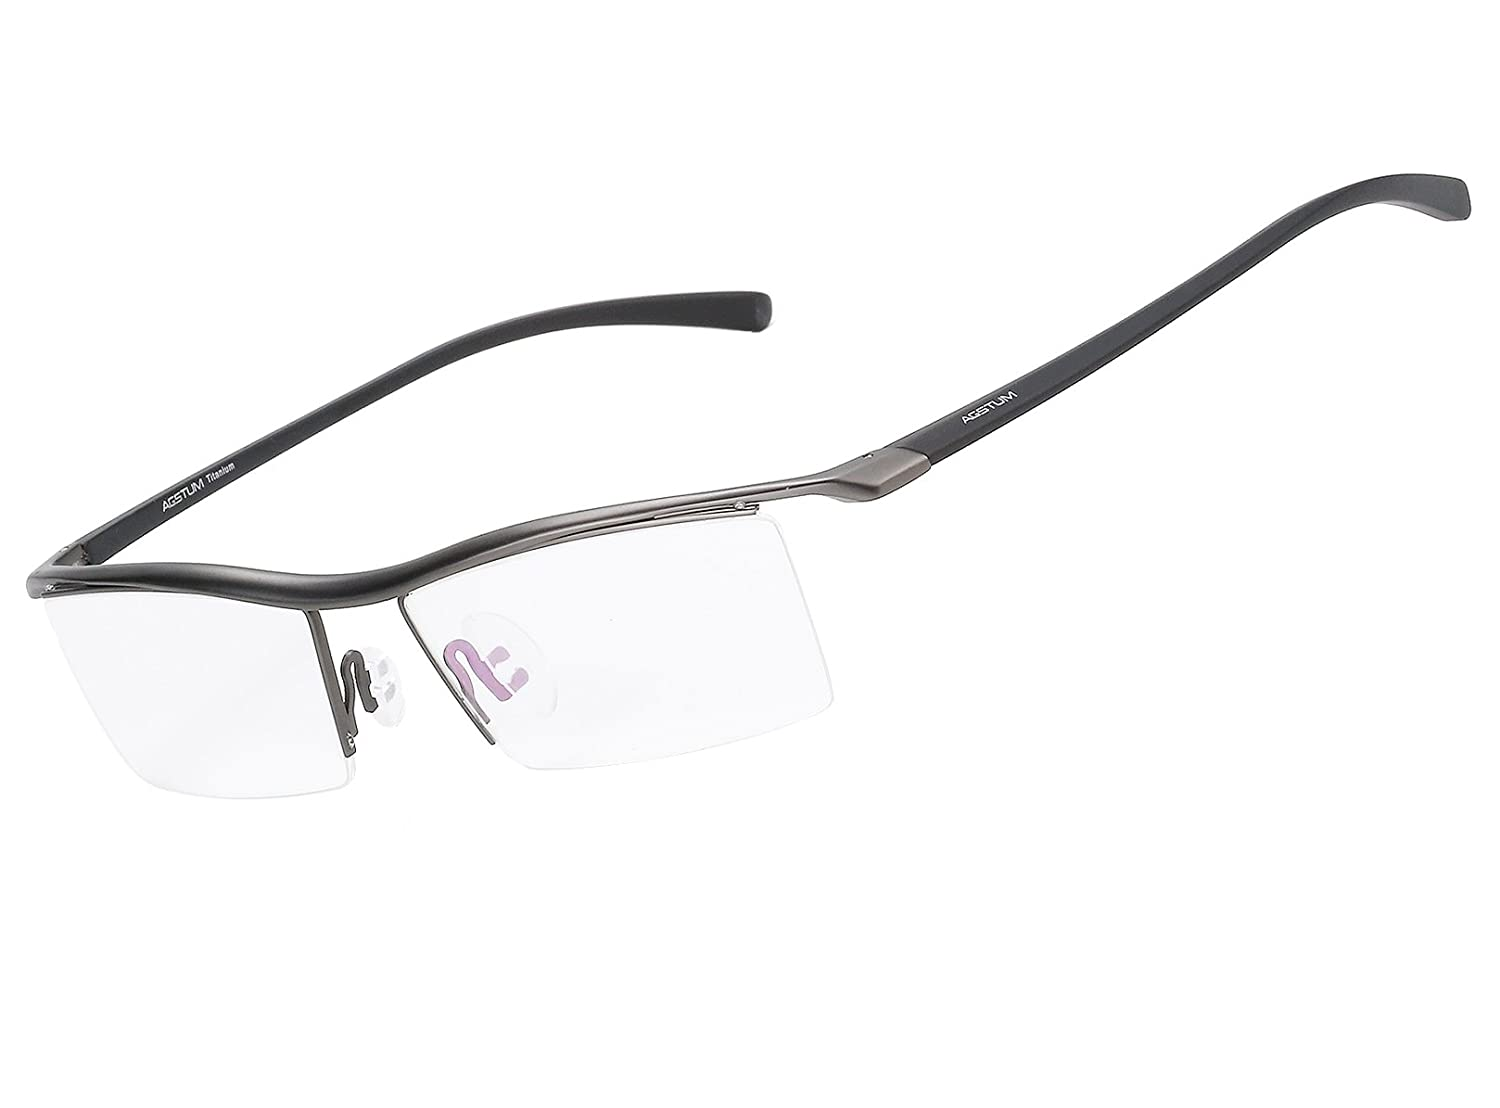 af9755a4cd Agstum Pure Titanium Half Rimless Business Glasses Frame Optical Eyeglasses  Clear Lens (Gunmetal)  Amazon.in  Clothing   Accessories